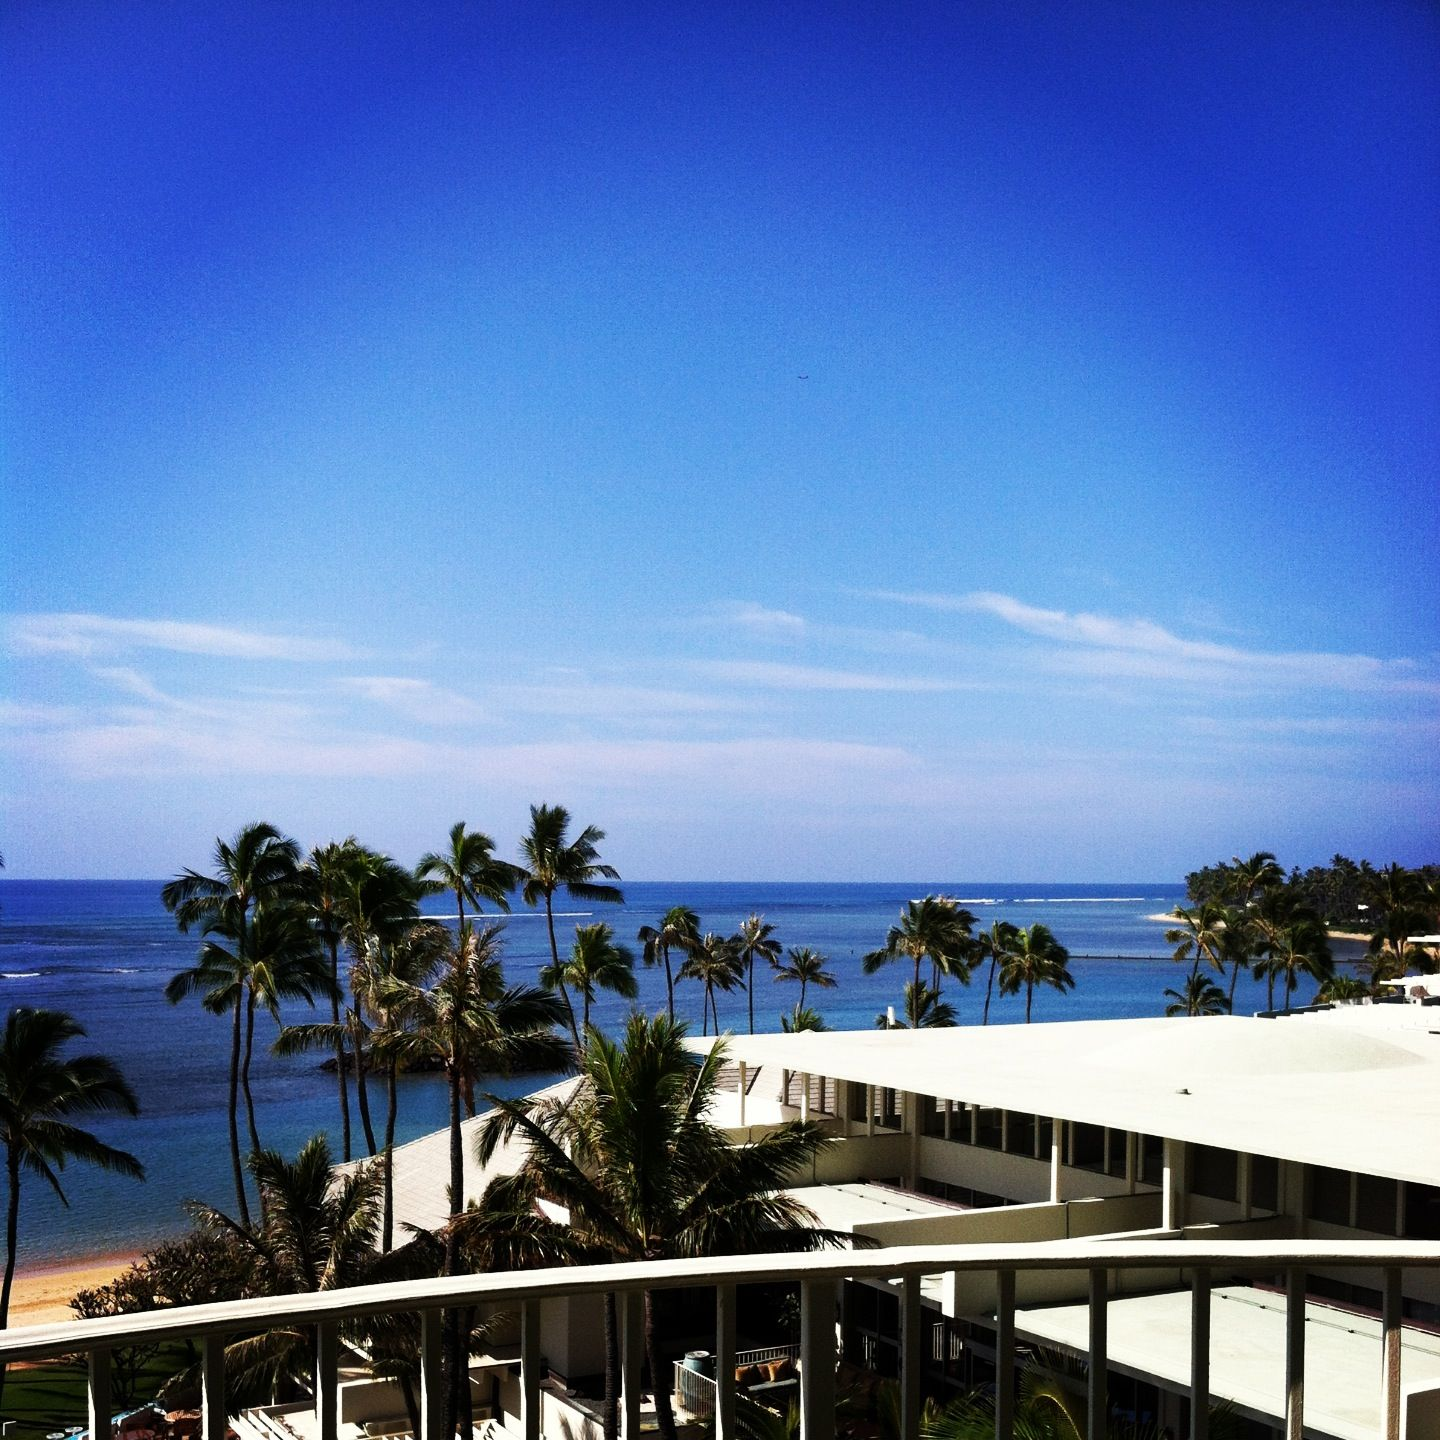 Beach House For Rent Oahu: Beautiful Oceanfront View From Lanai...